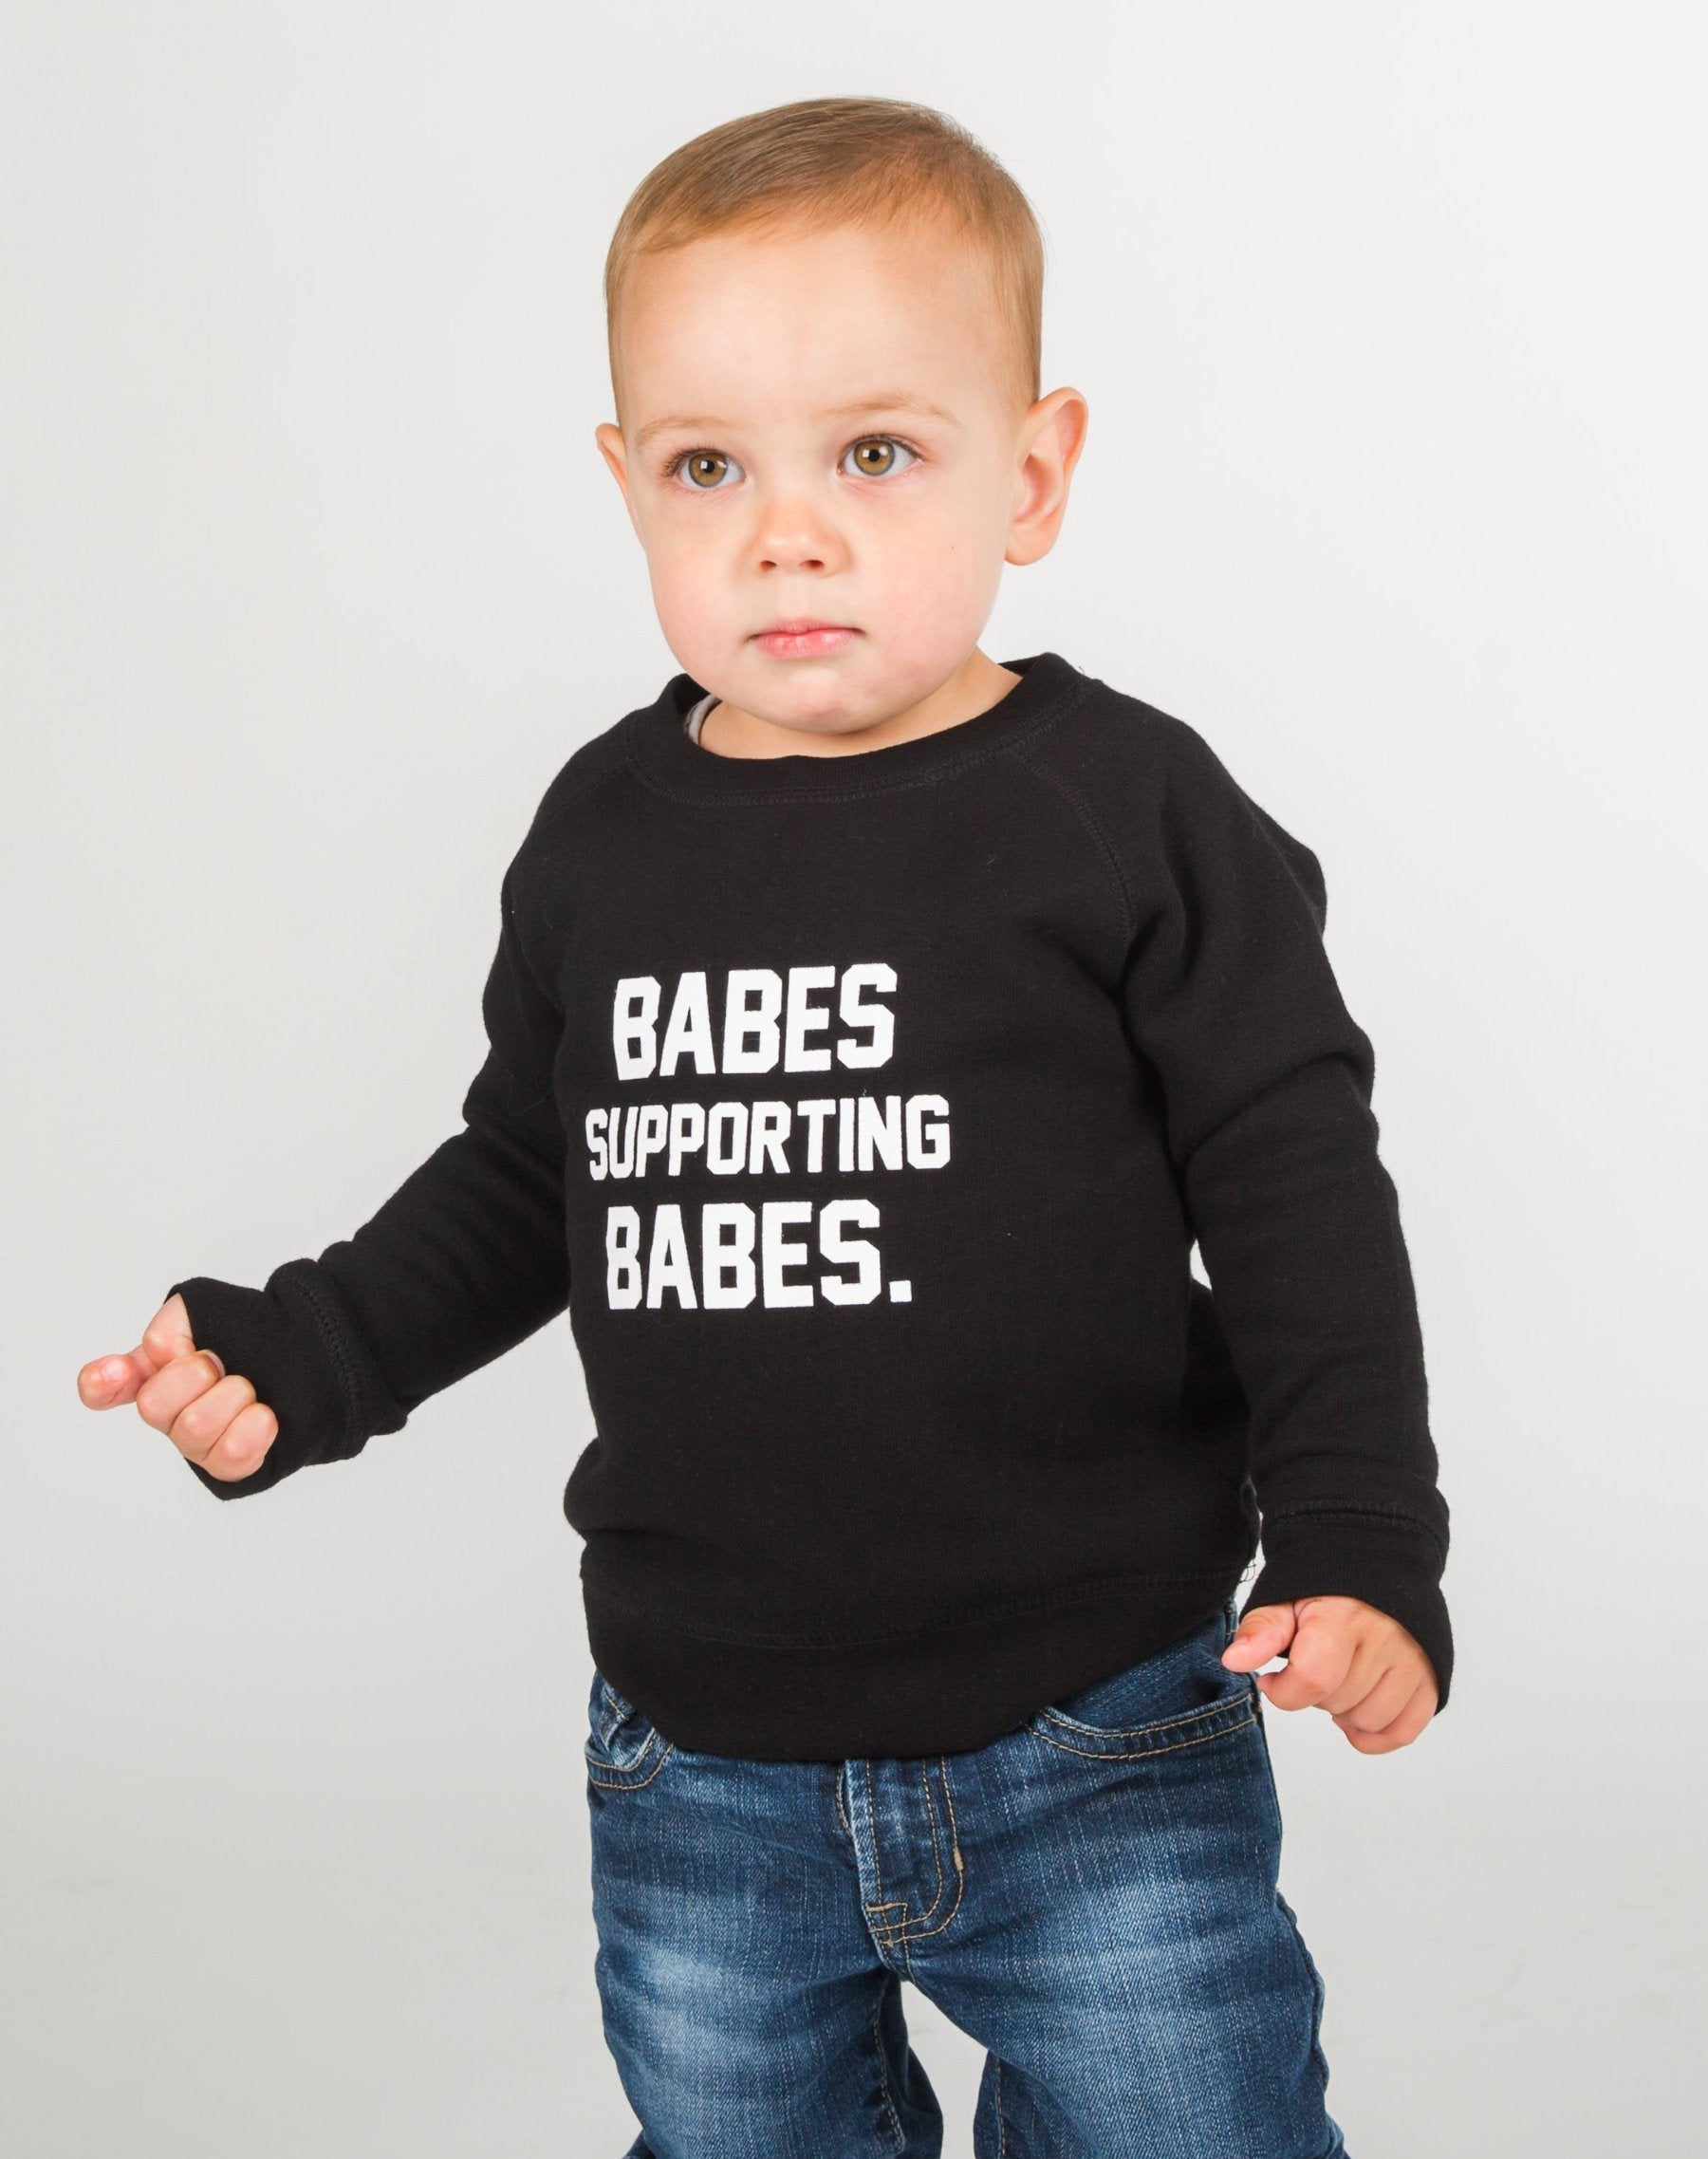 """BABES SUPPORTING BABES"" Little Babes Crew Neck Sweatshirt 